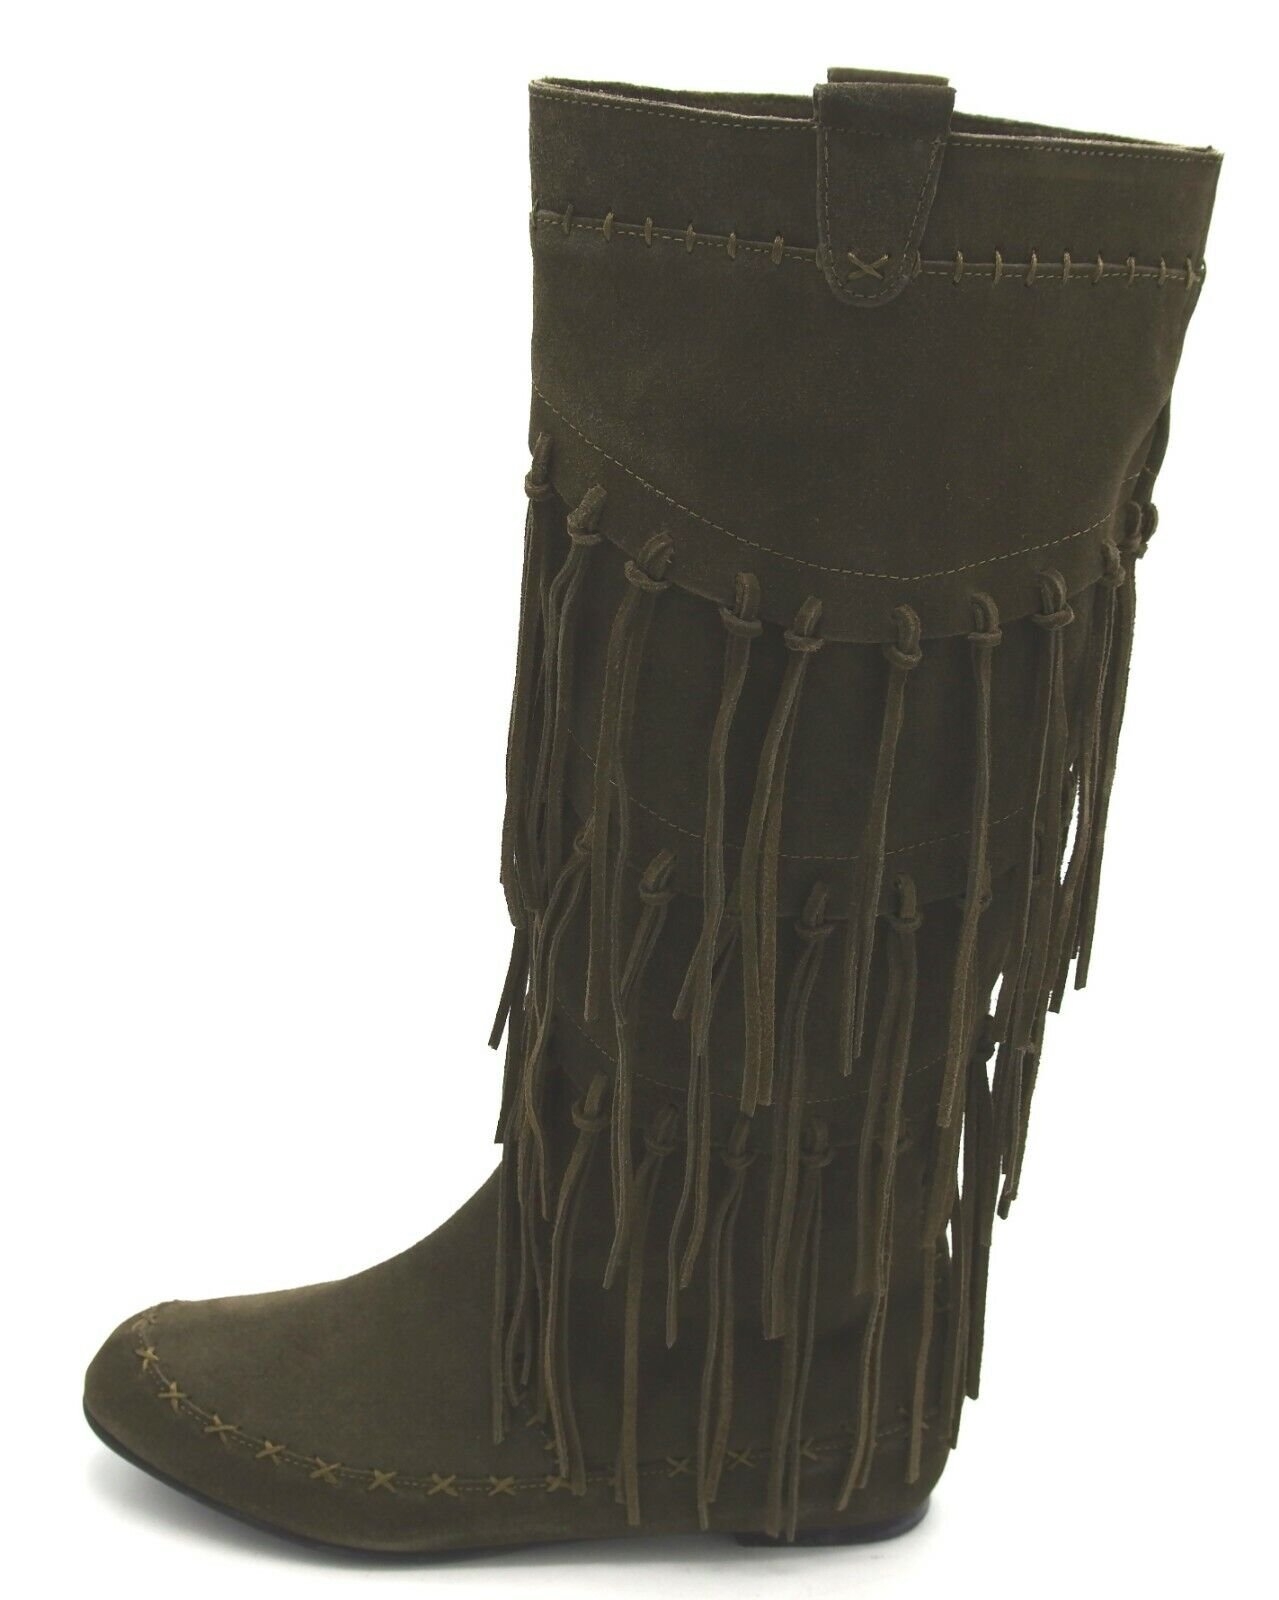 J8001 New Women's June Ambpink Tall Fringed Olive Suede Boot 8 M